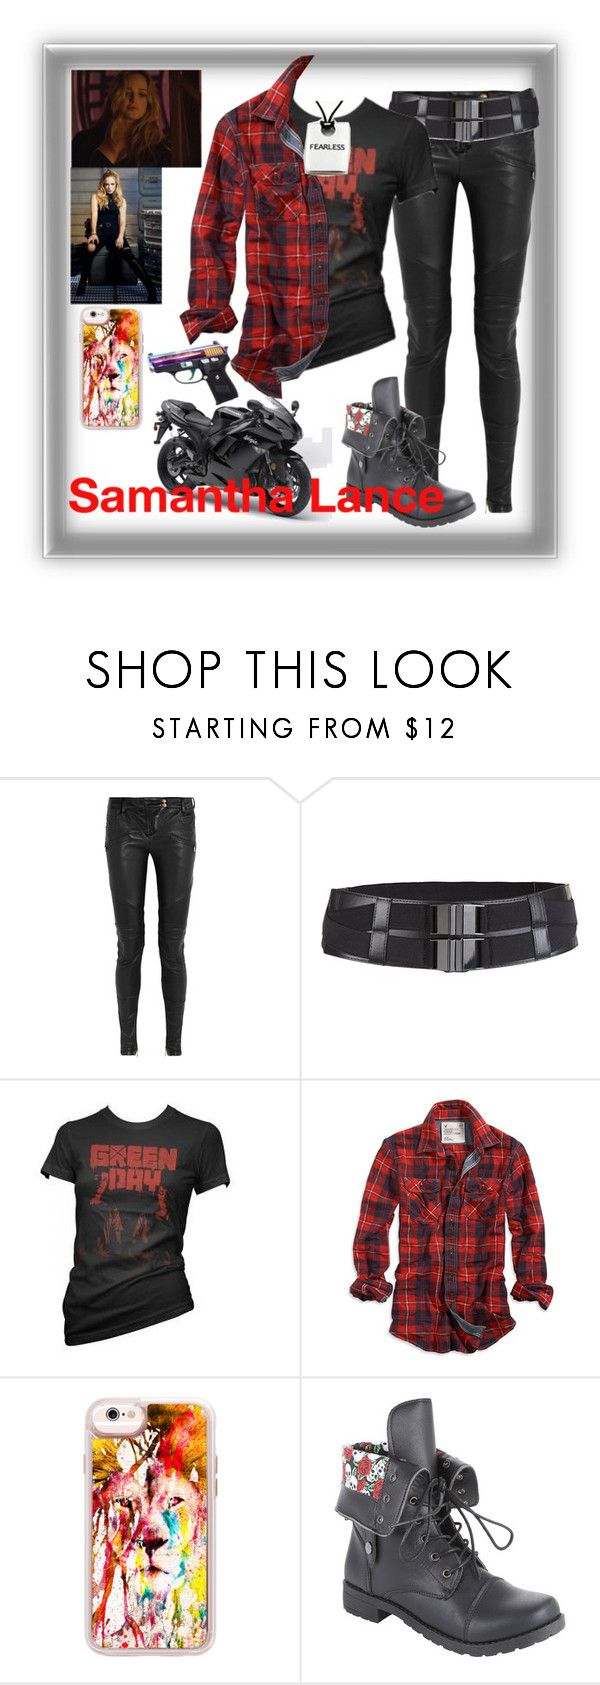 """""""Sam Lance"""" by ironkyle ❤ liked on Polyvore featuring Balmain, American Eagle Outfitters, Casetify and Kawasaki"""